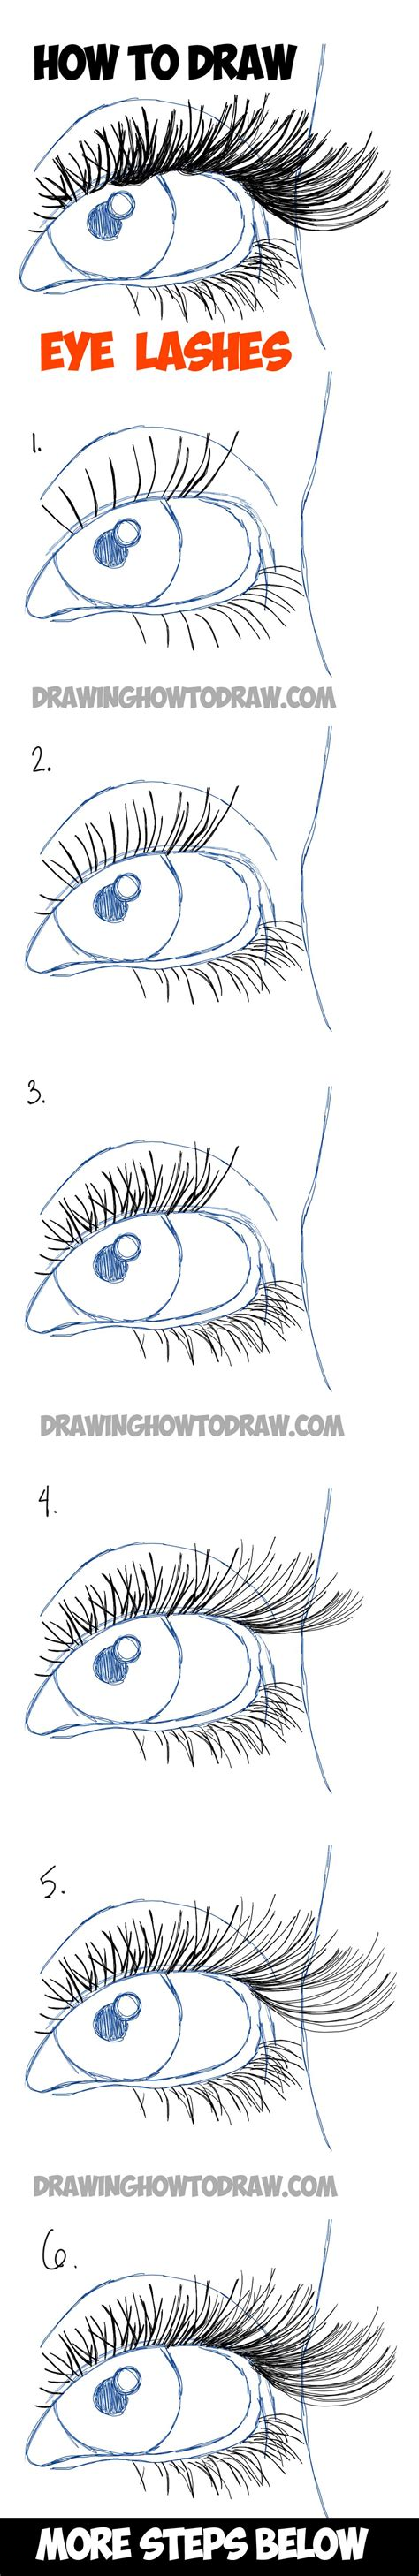 learn how to draw eye lashes with step by step illustrated